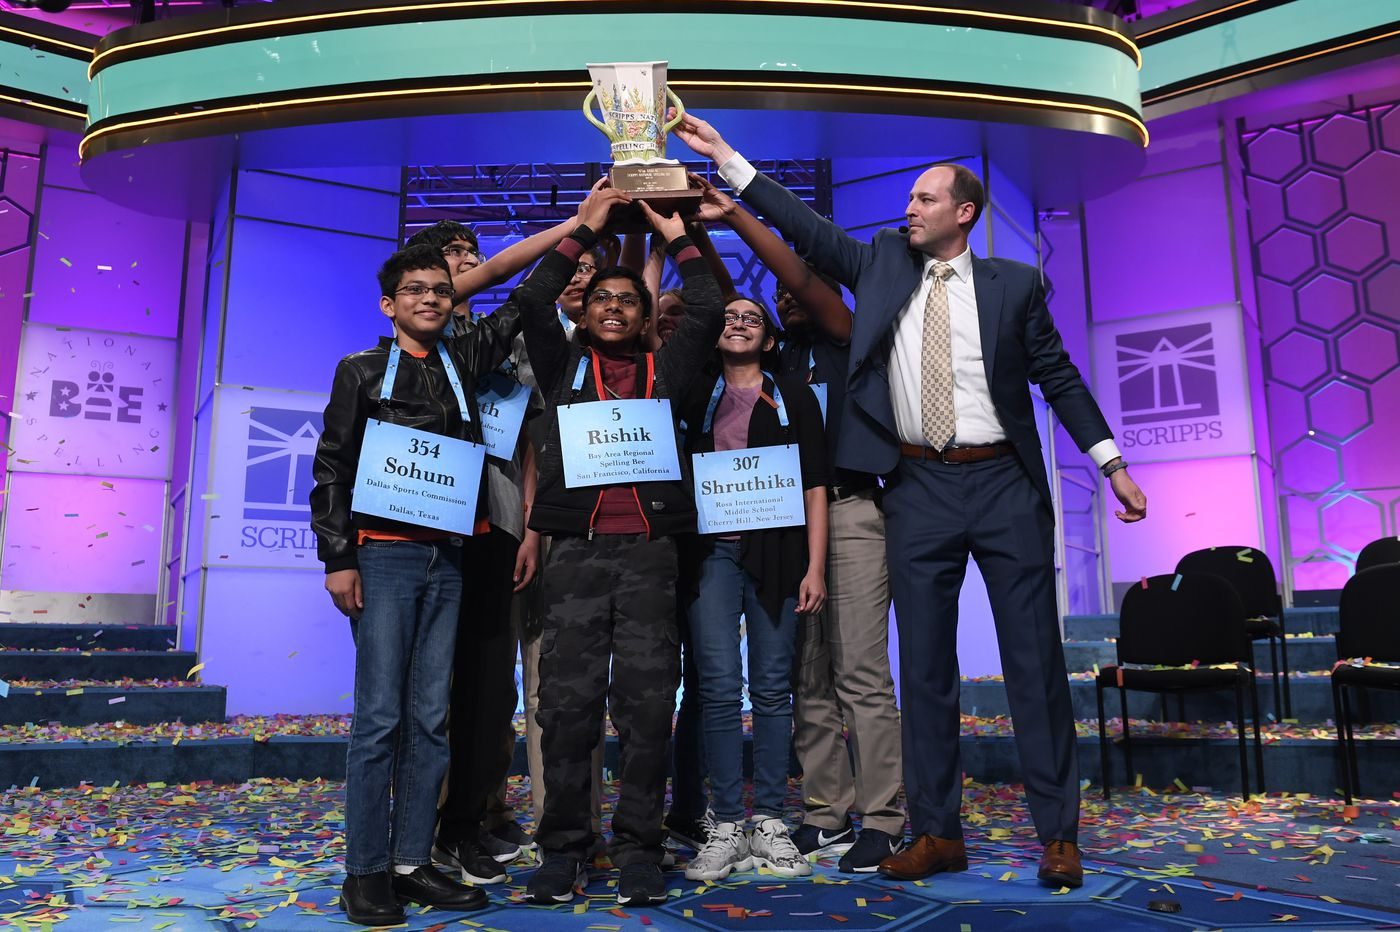 Shruthika Padhy, Cherry Hill middle schooler, talks historic win at Scripps National Spelling Bee